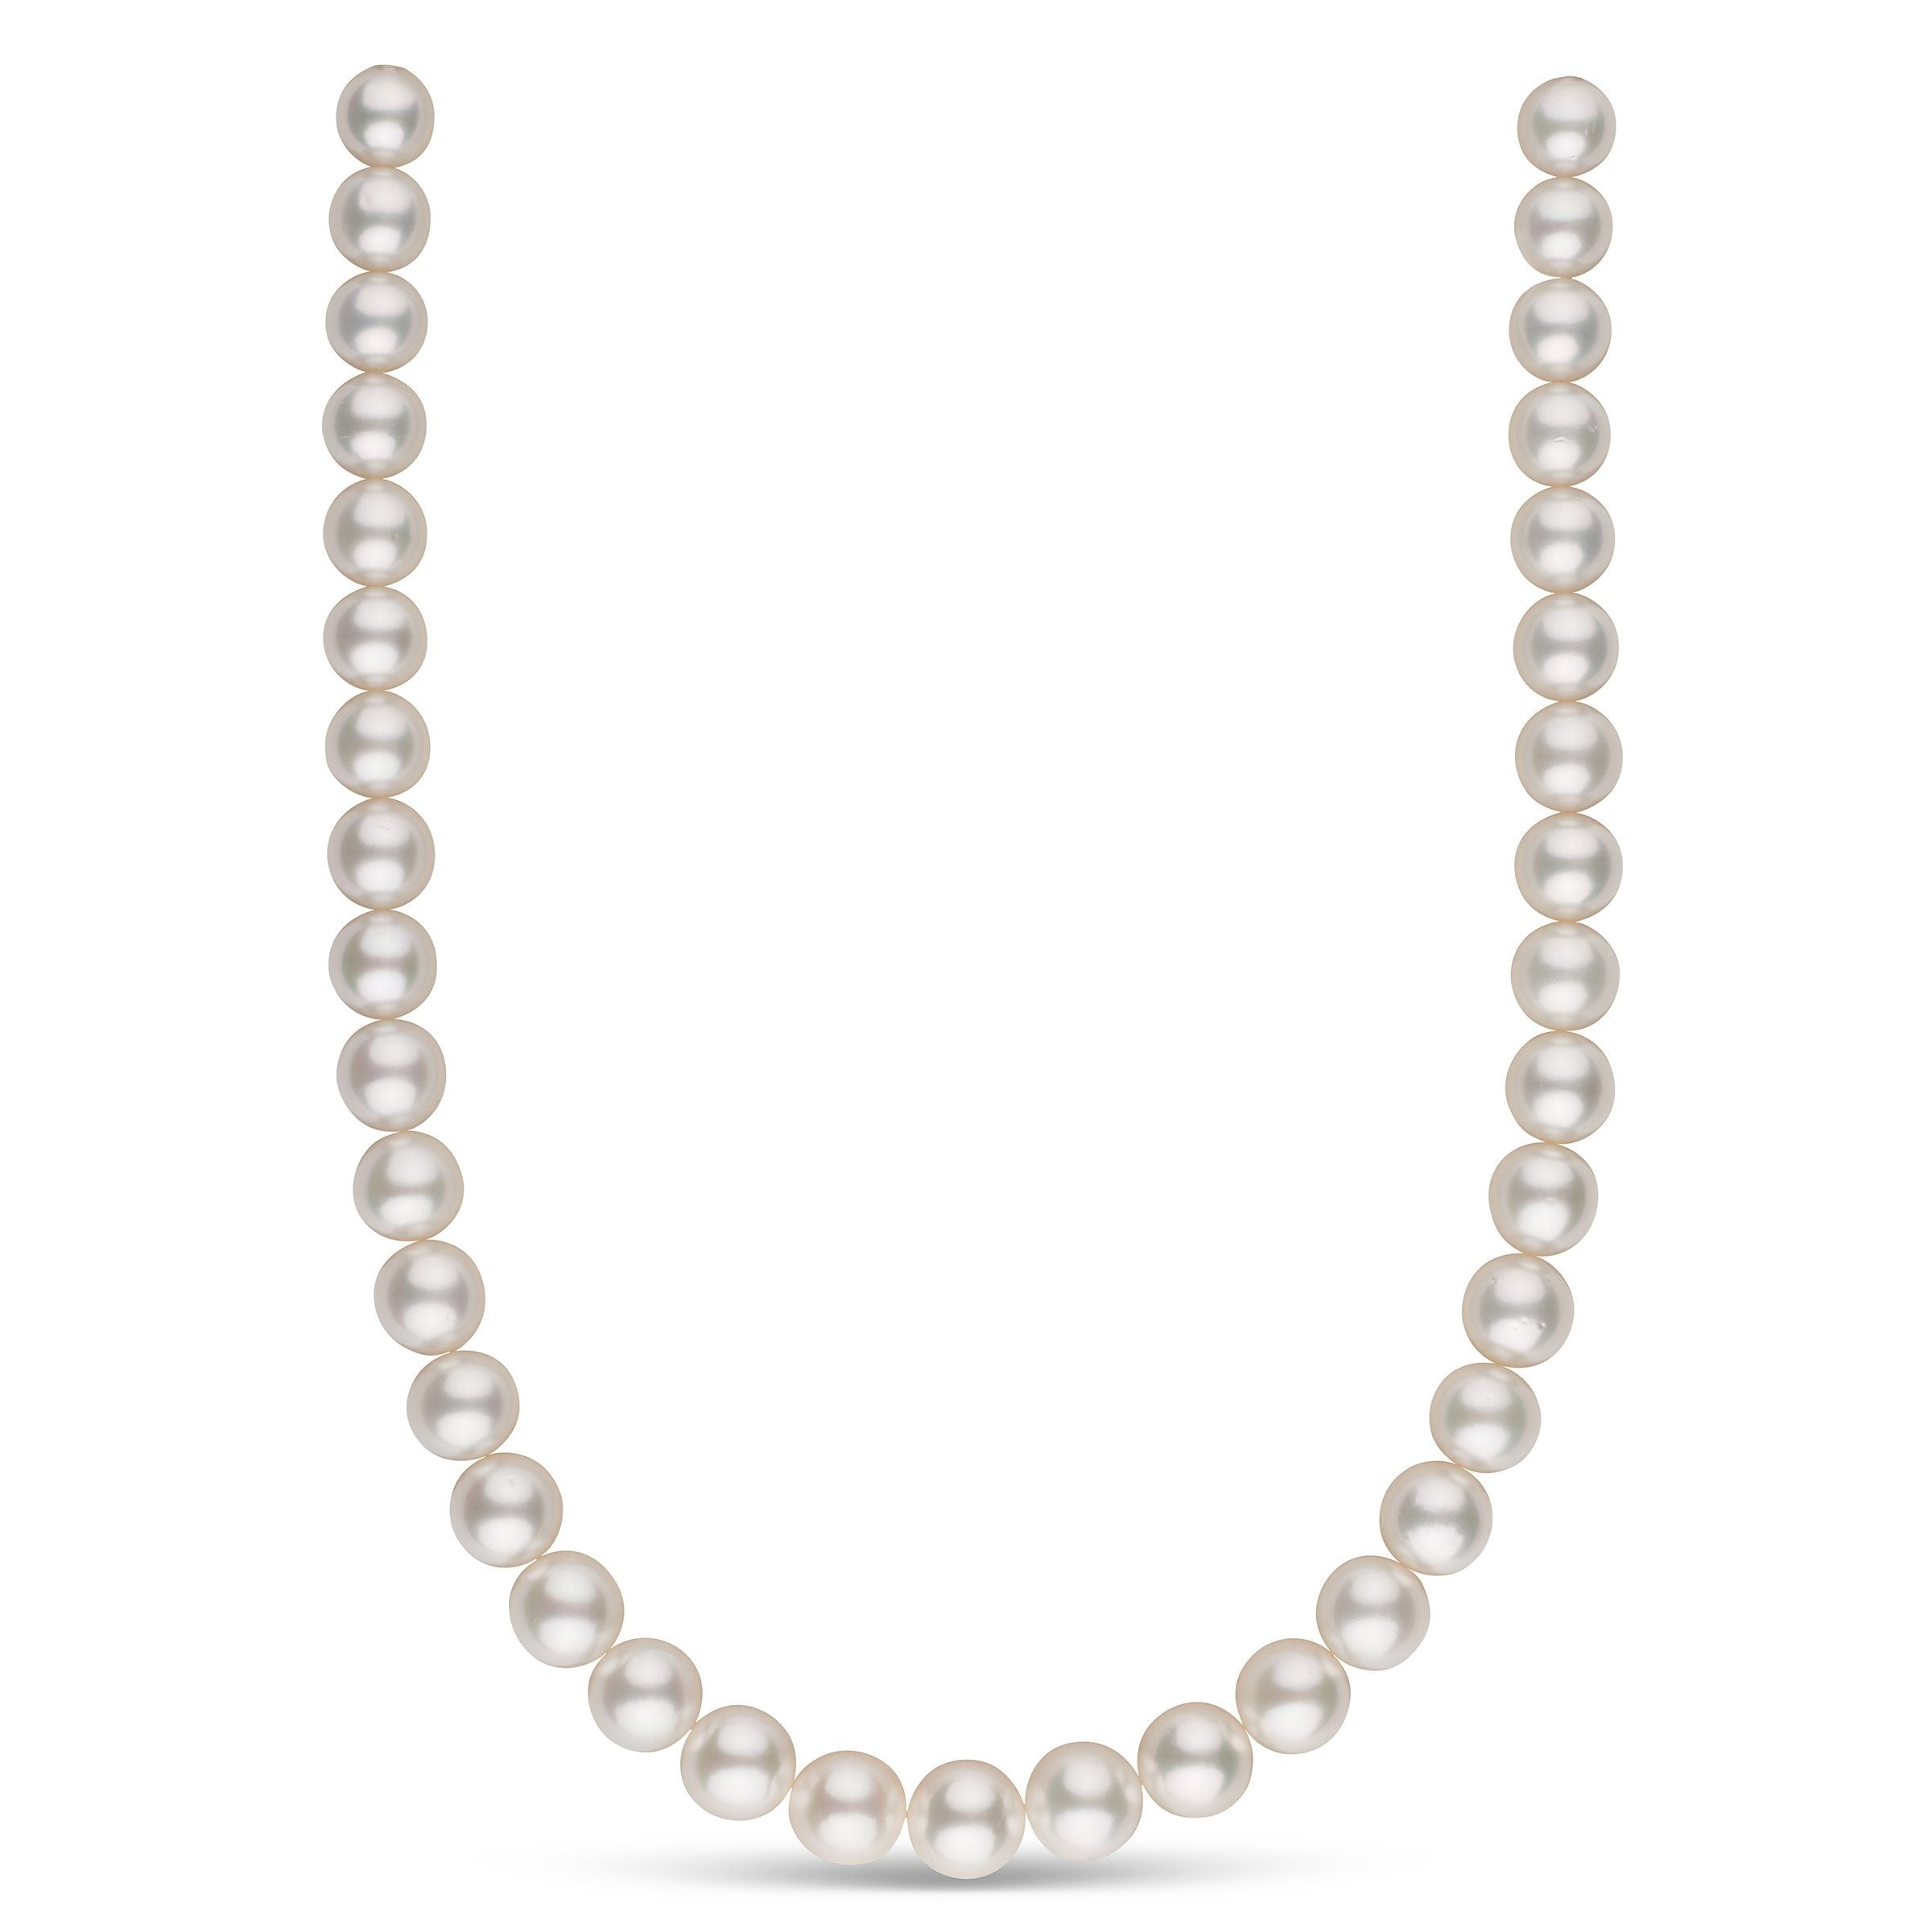 The Capriccio White South Sea Pearl Necklace